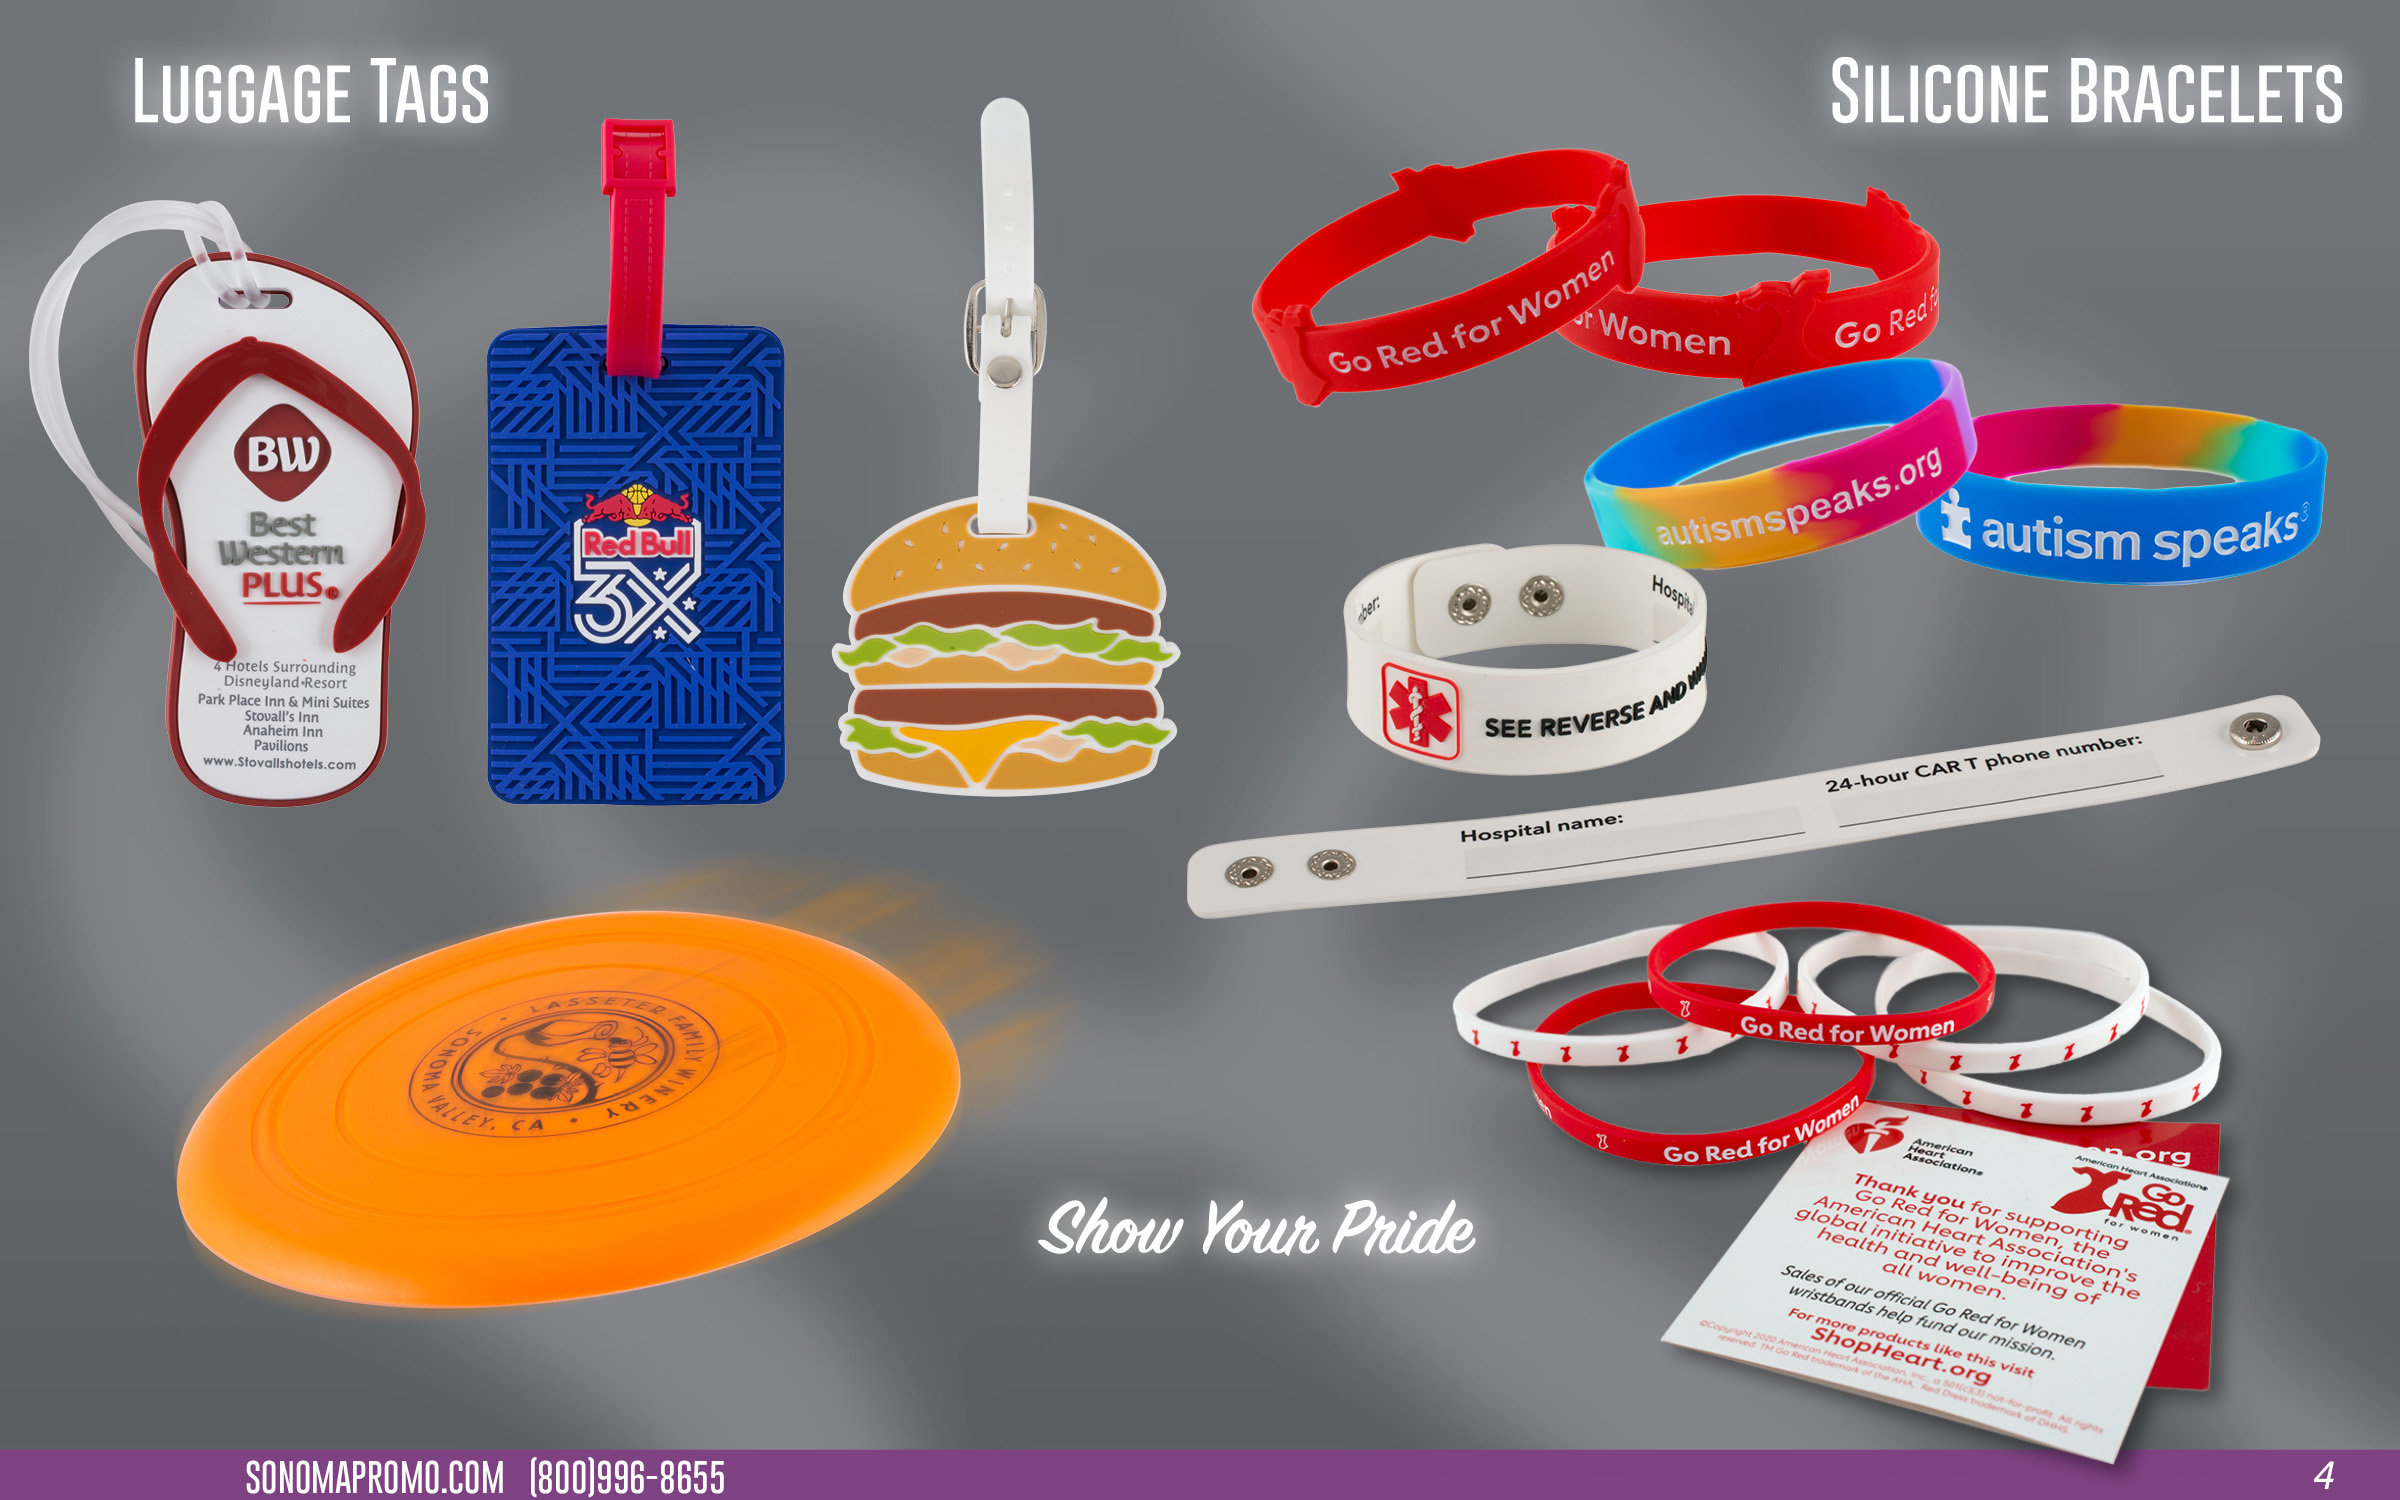 Luggage Tags & Silicone Bracelets